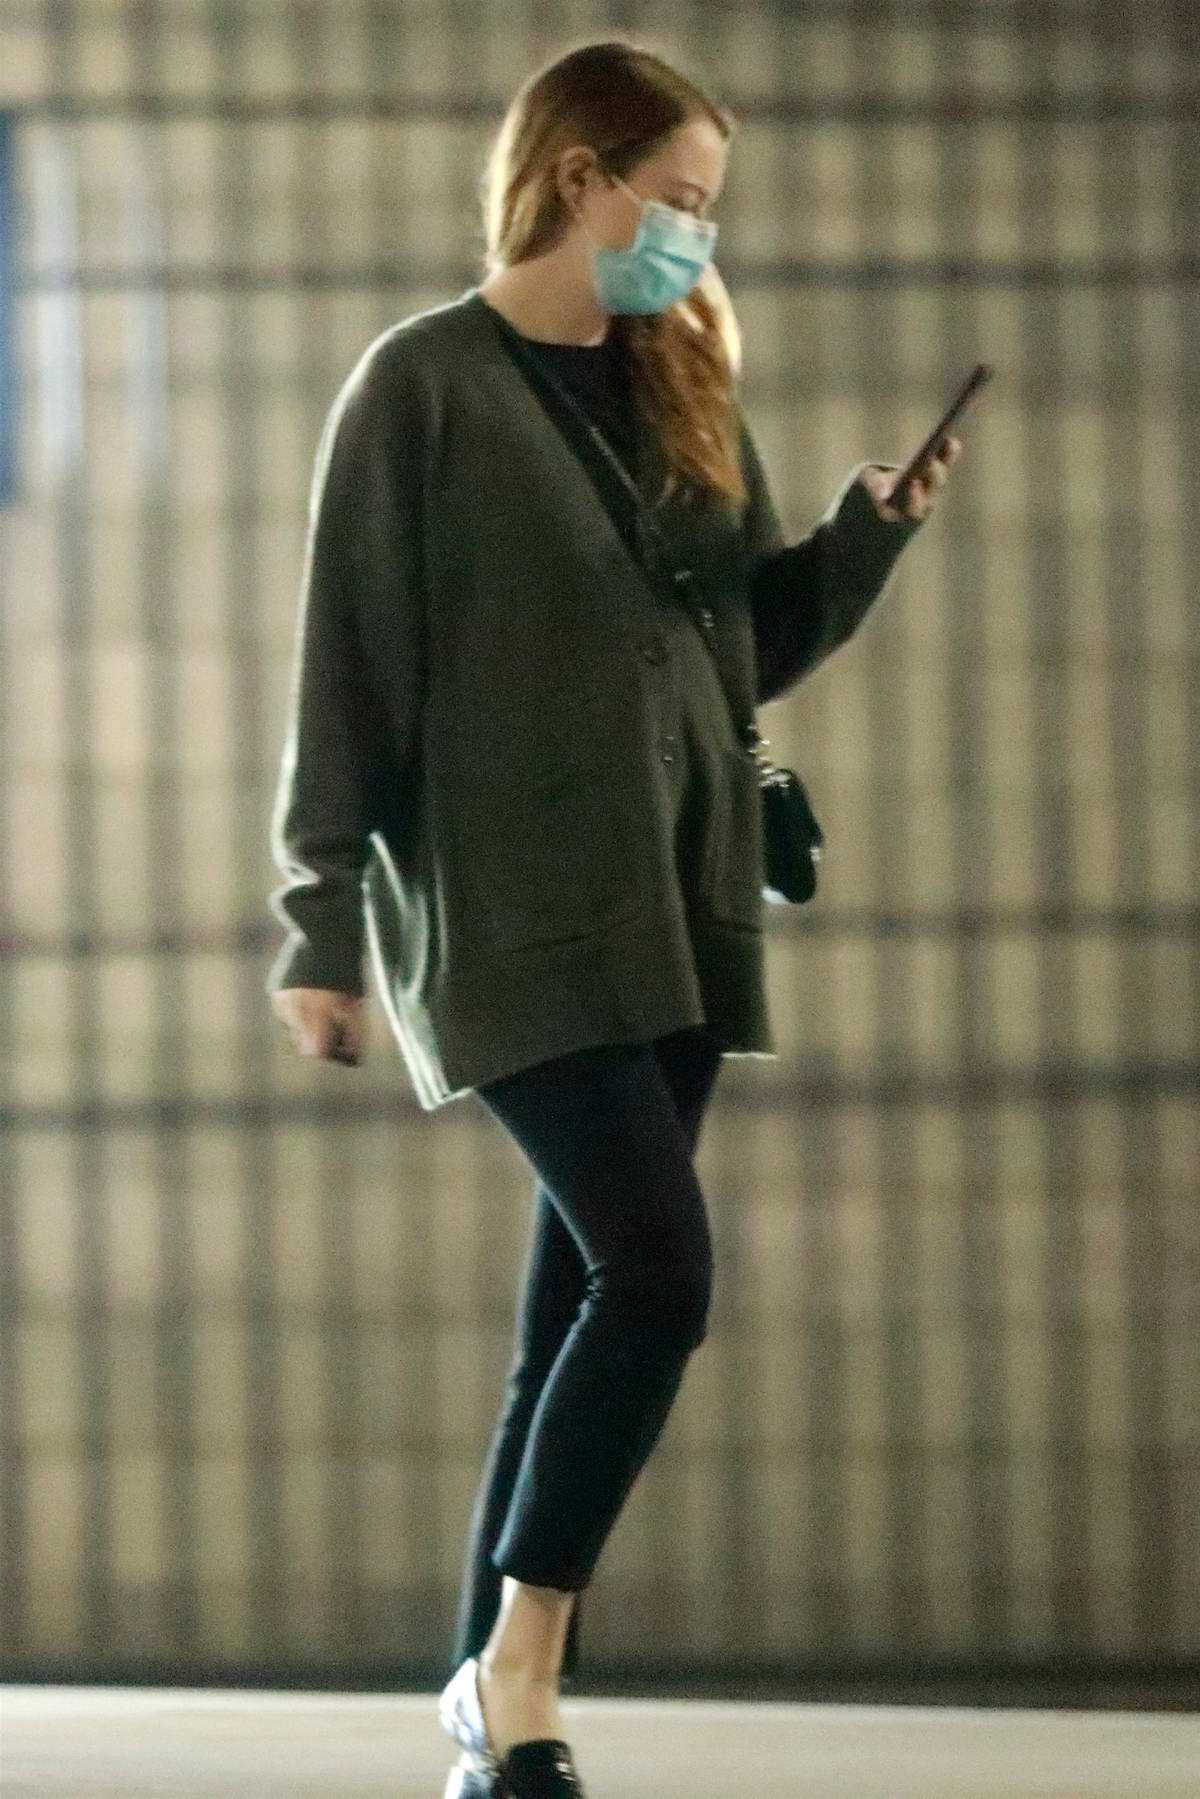 Emma Stone looks cozy in an oversized cardigan as she heads to a meeting in Santa Monica, California